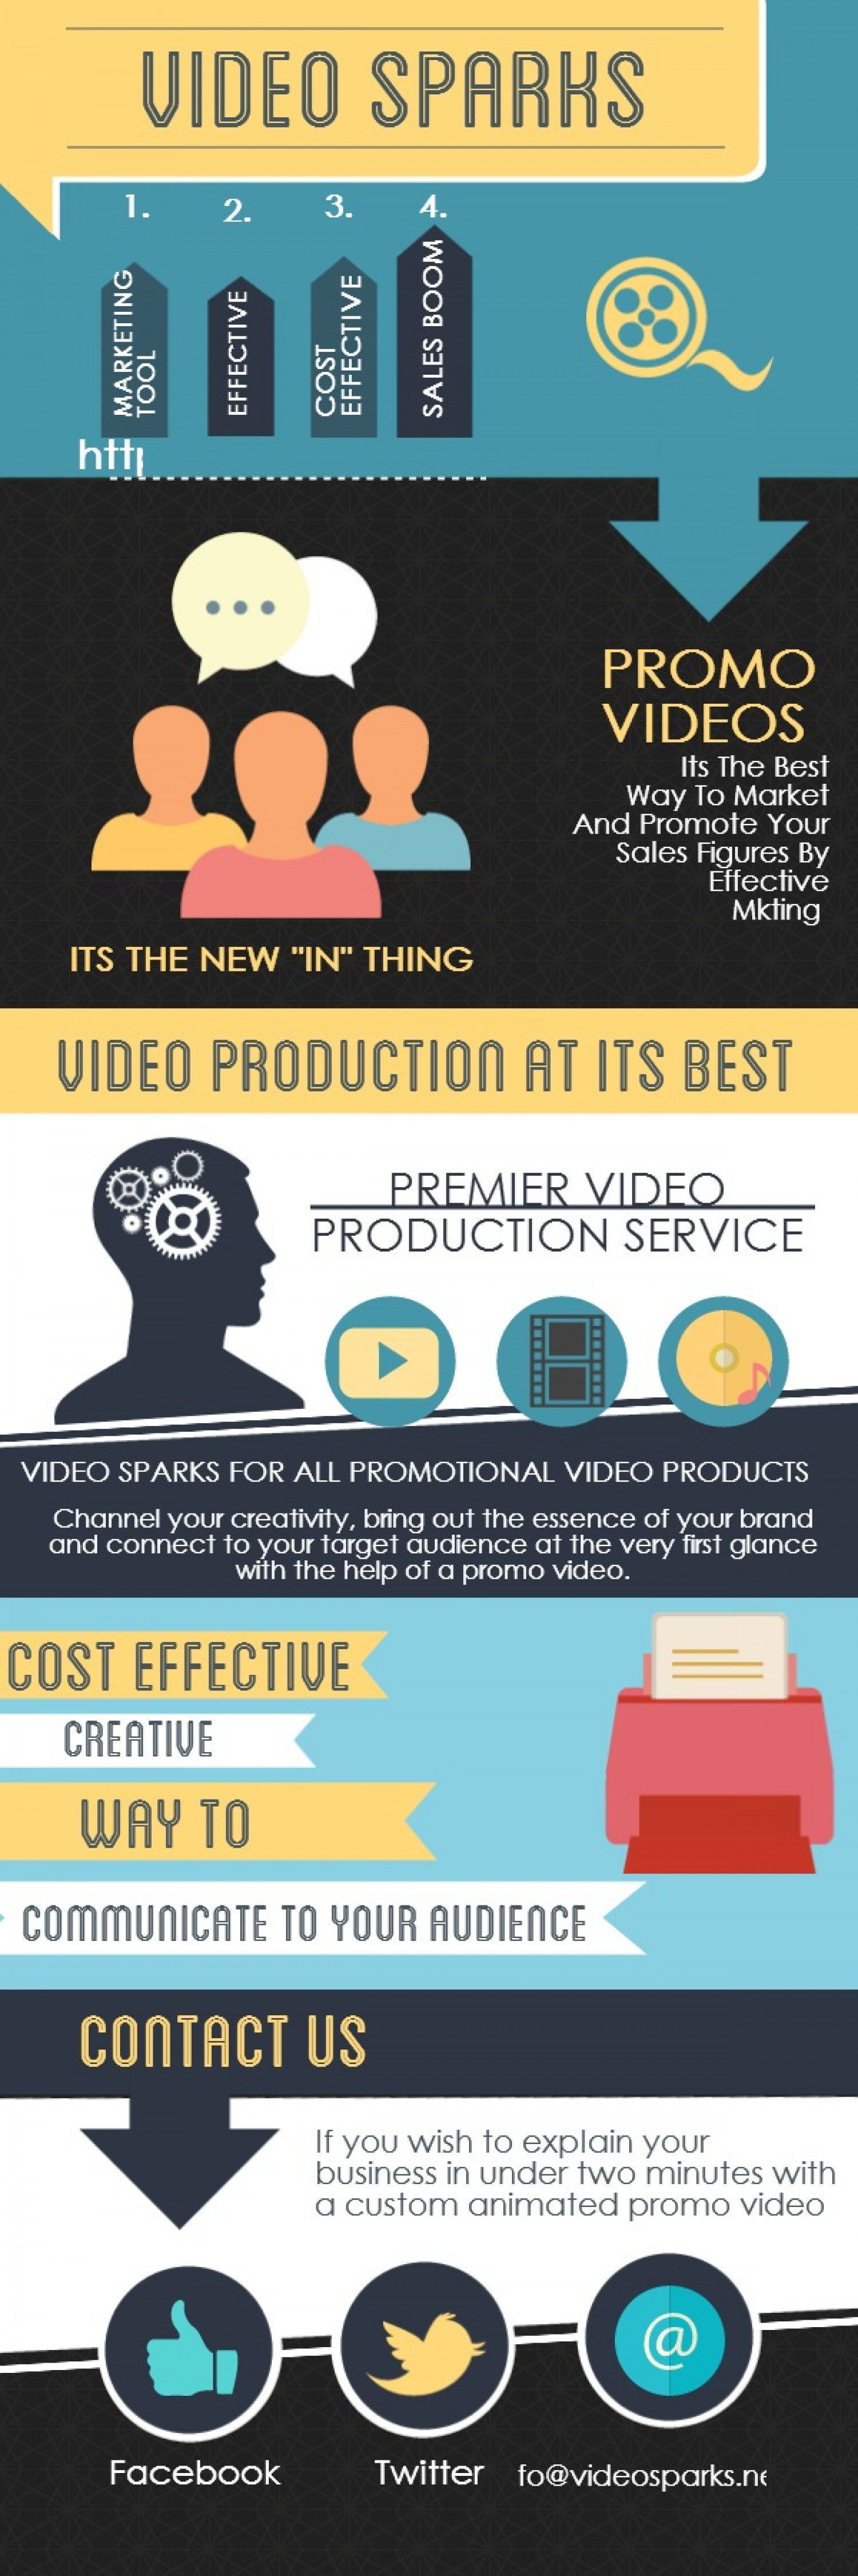 Video Sparks Infographic